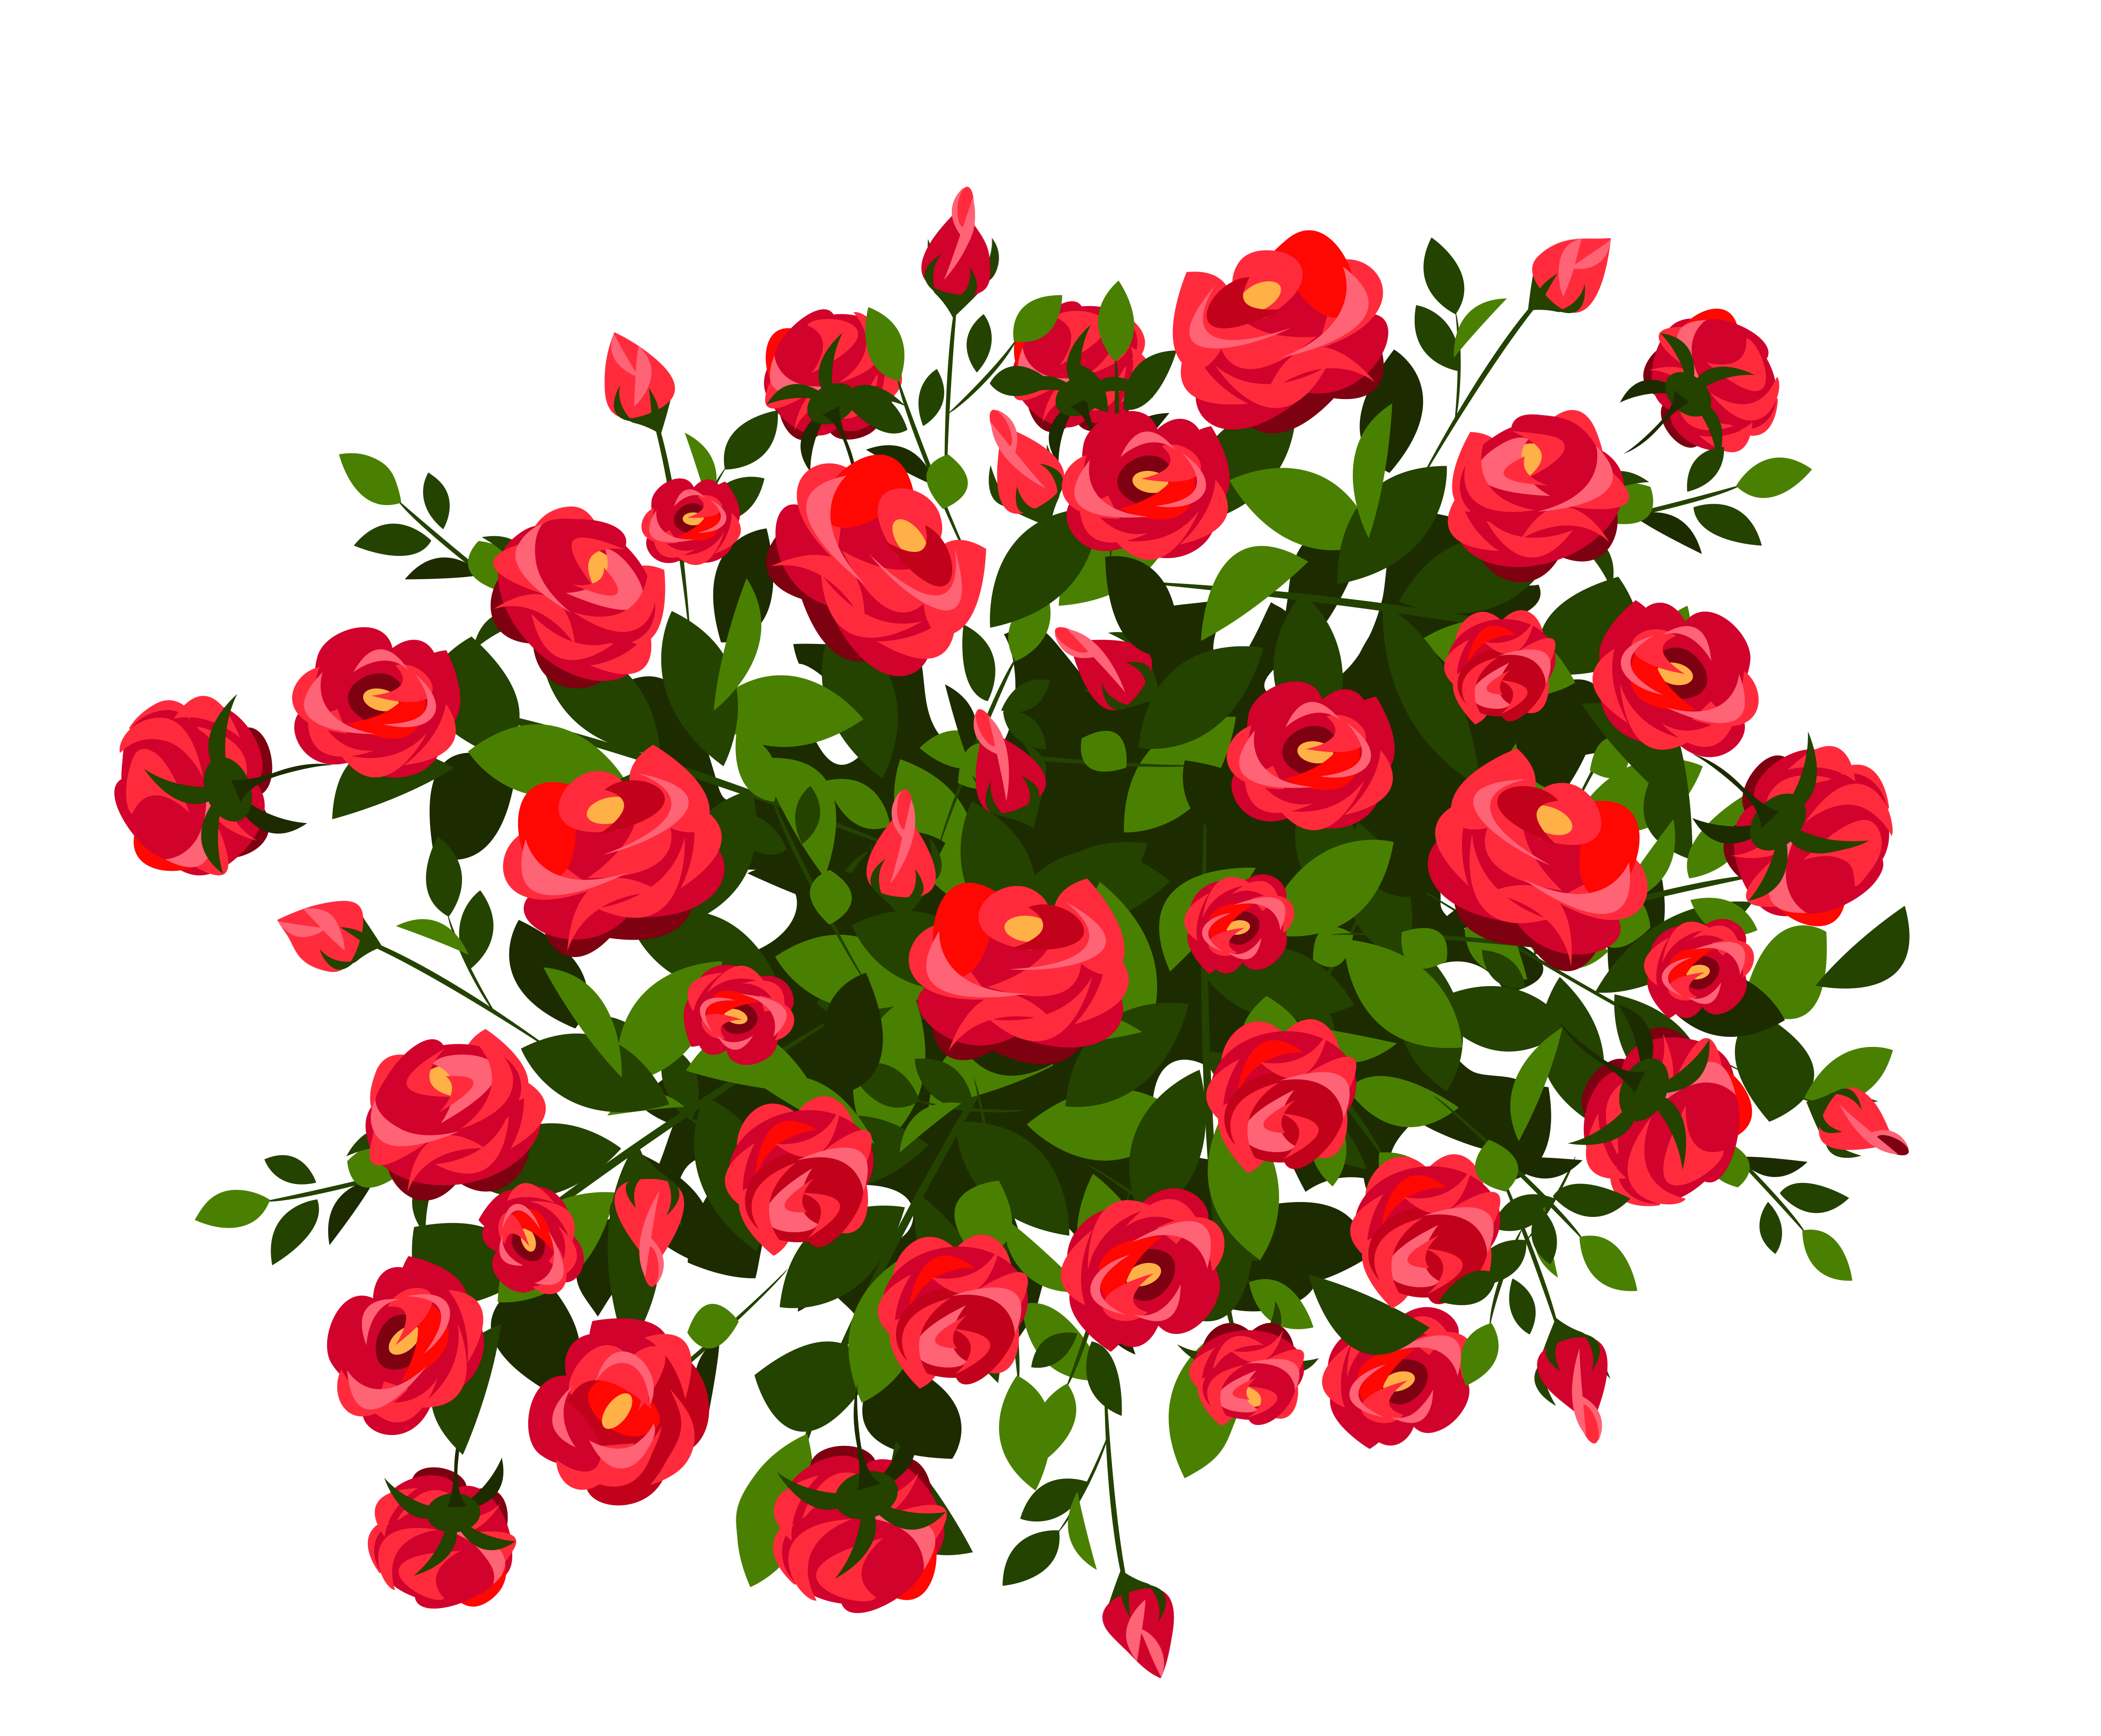 Flower bush clipart png freeuse stock 28+ Collection of Rose Bush Clipart   High quality, free cliparts ... png freeuse stock